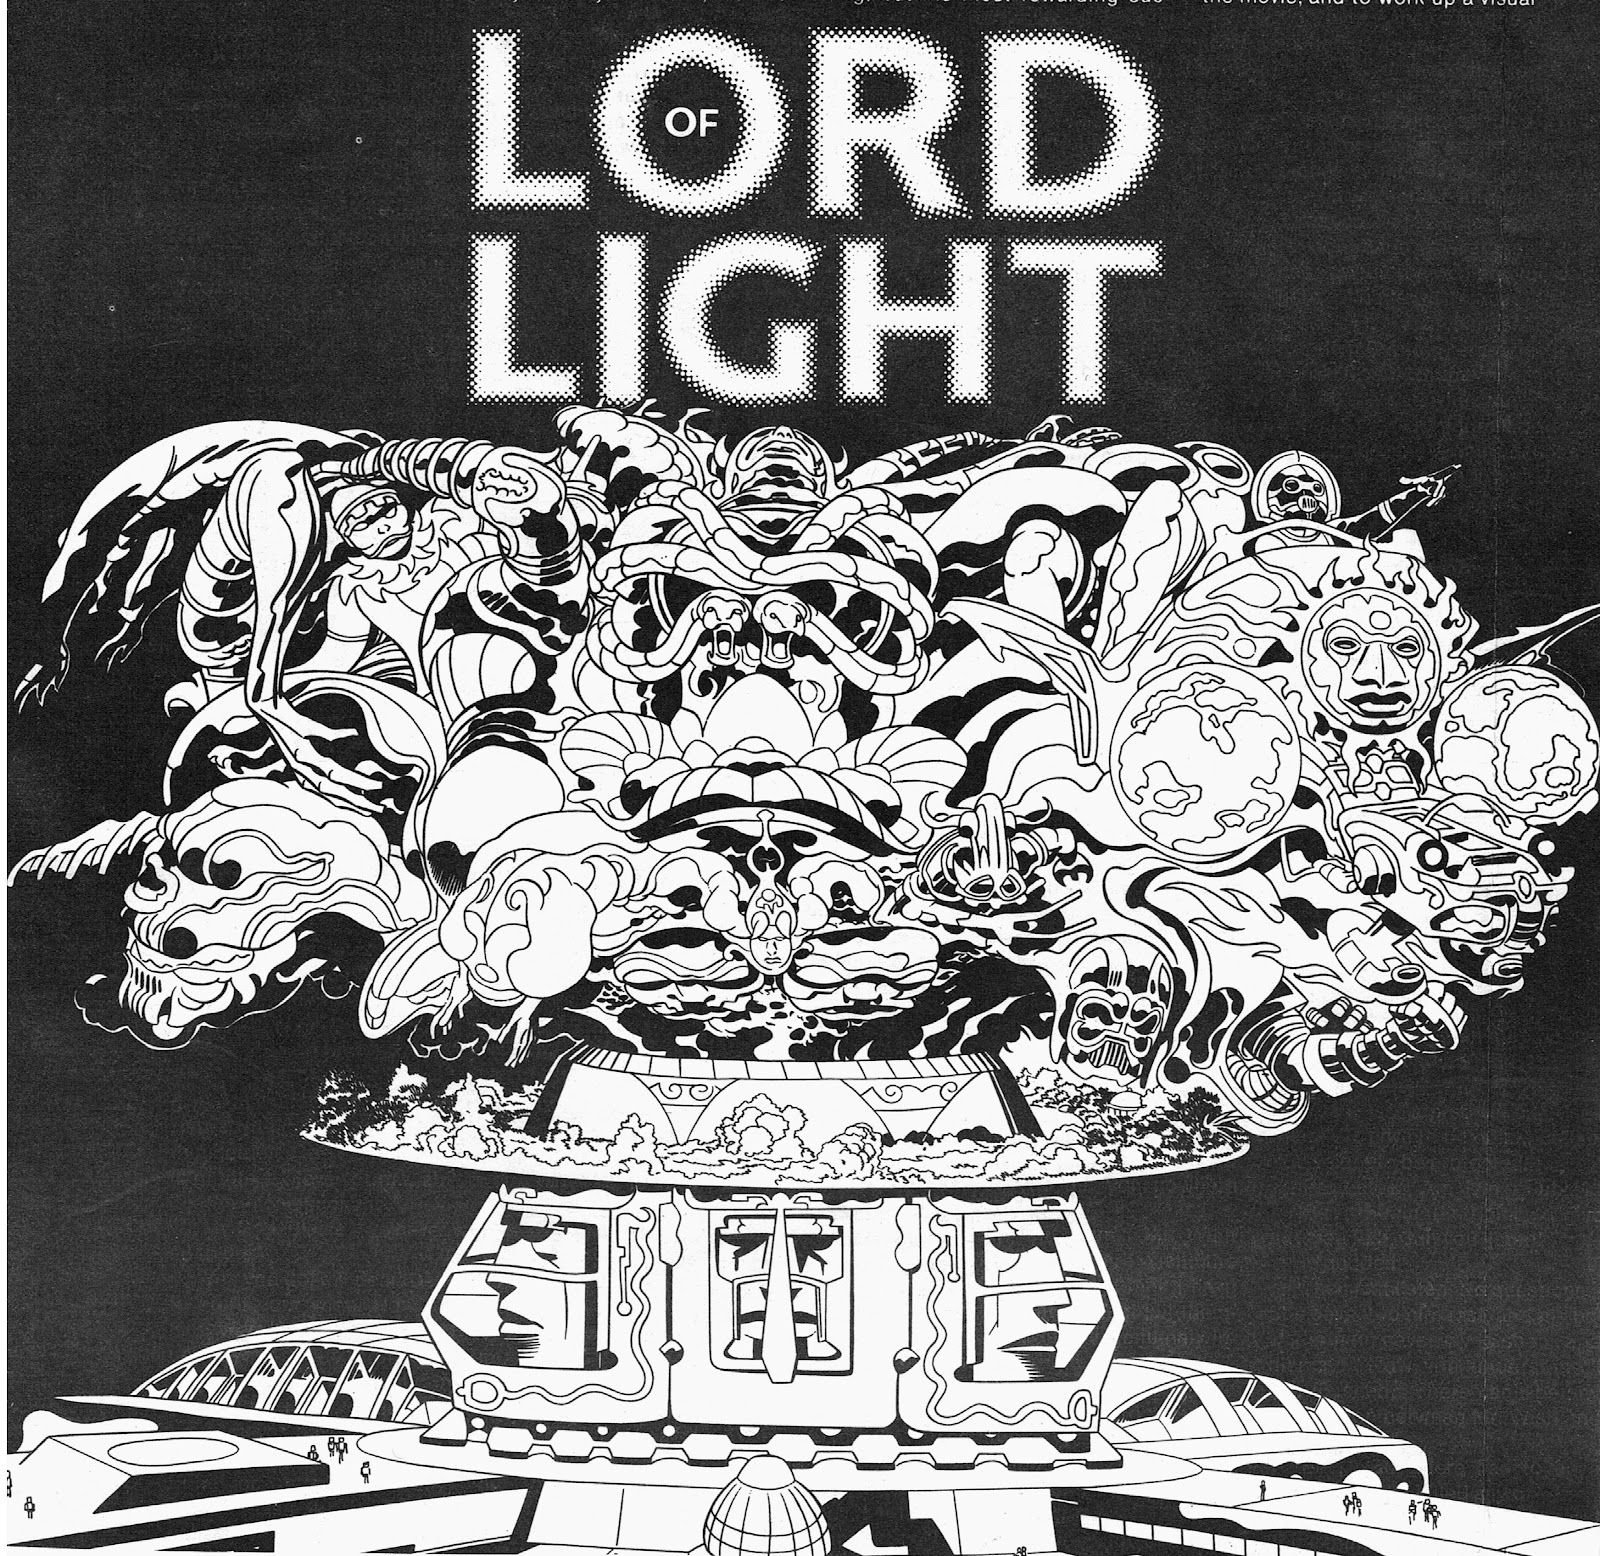 Cap'n's Comics: Argo, or Lord of Light, by Jack Kirby